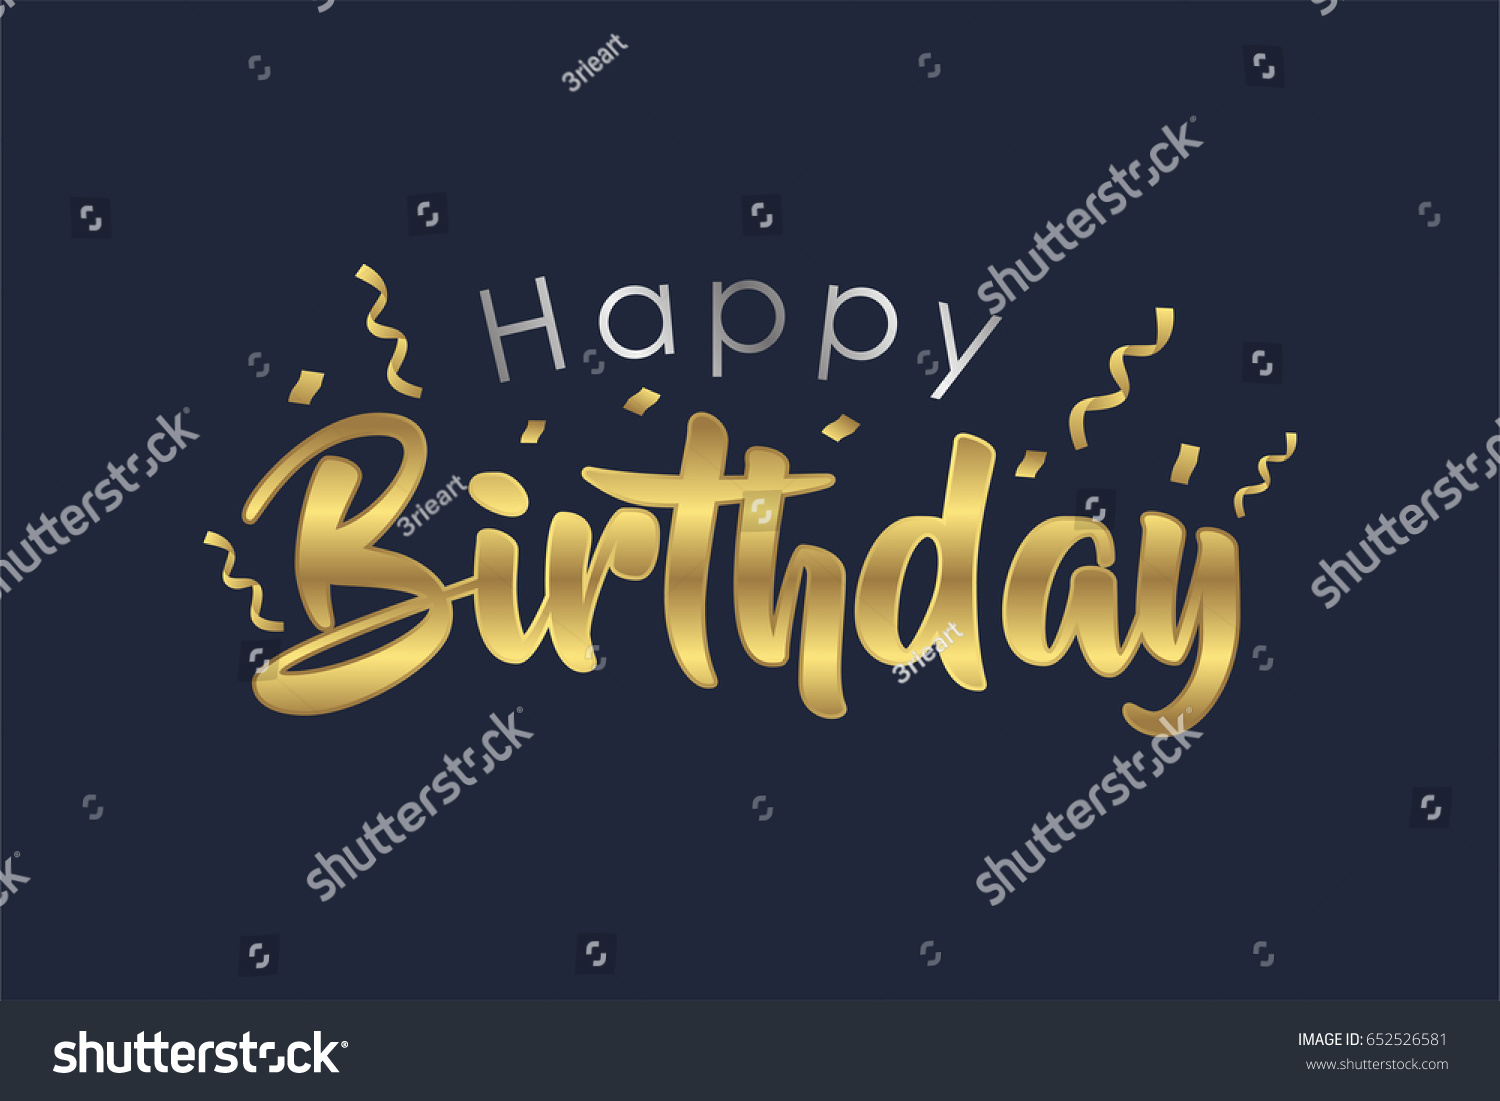 Gold silver happy birthday letter design stock vector 652526581 gold and silver happy birthday letter design for greeting cards birthday card invitation card stopboris Choice Image